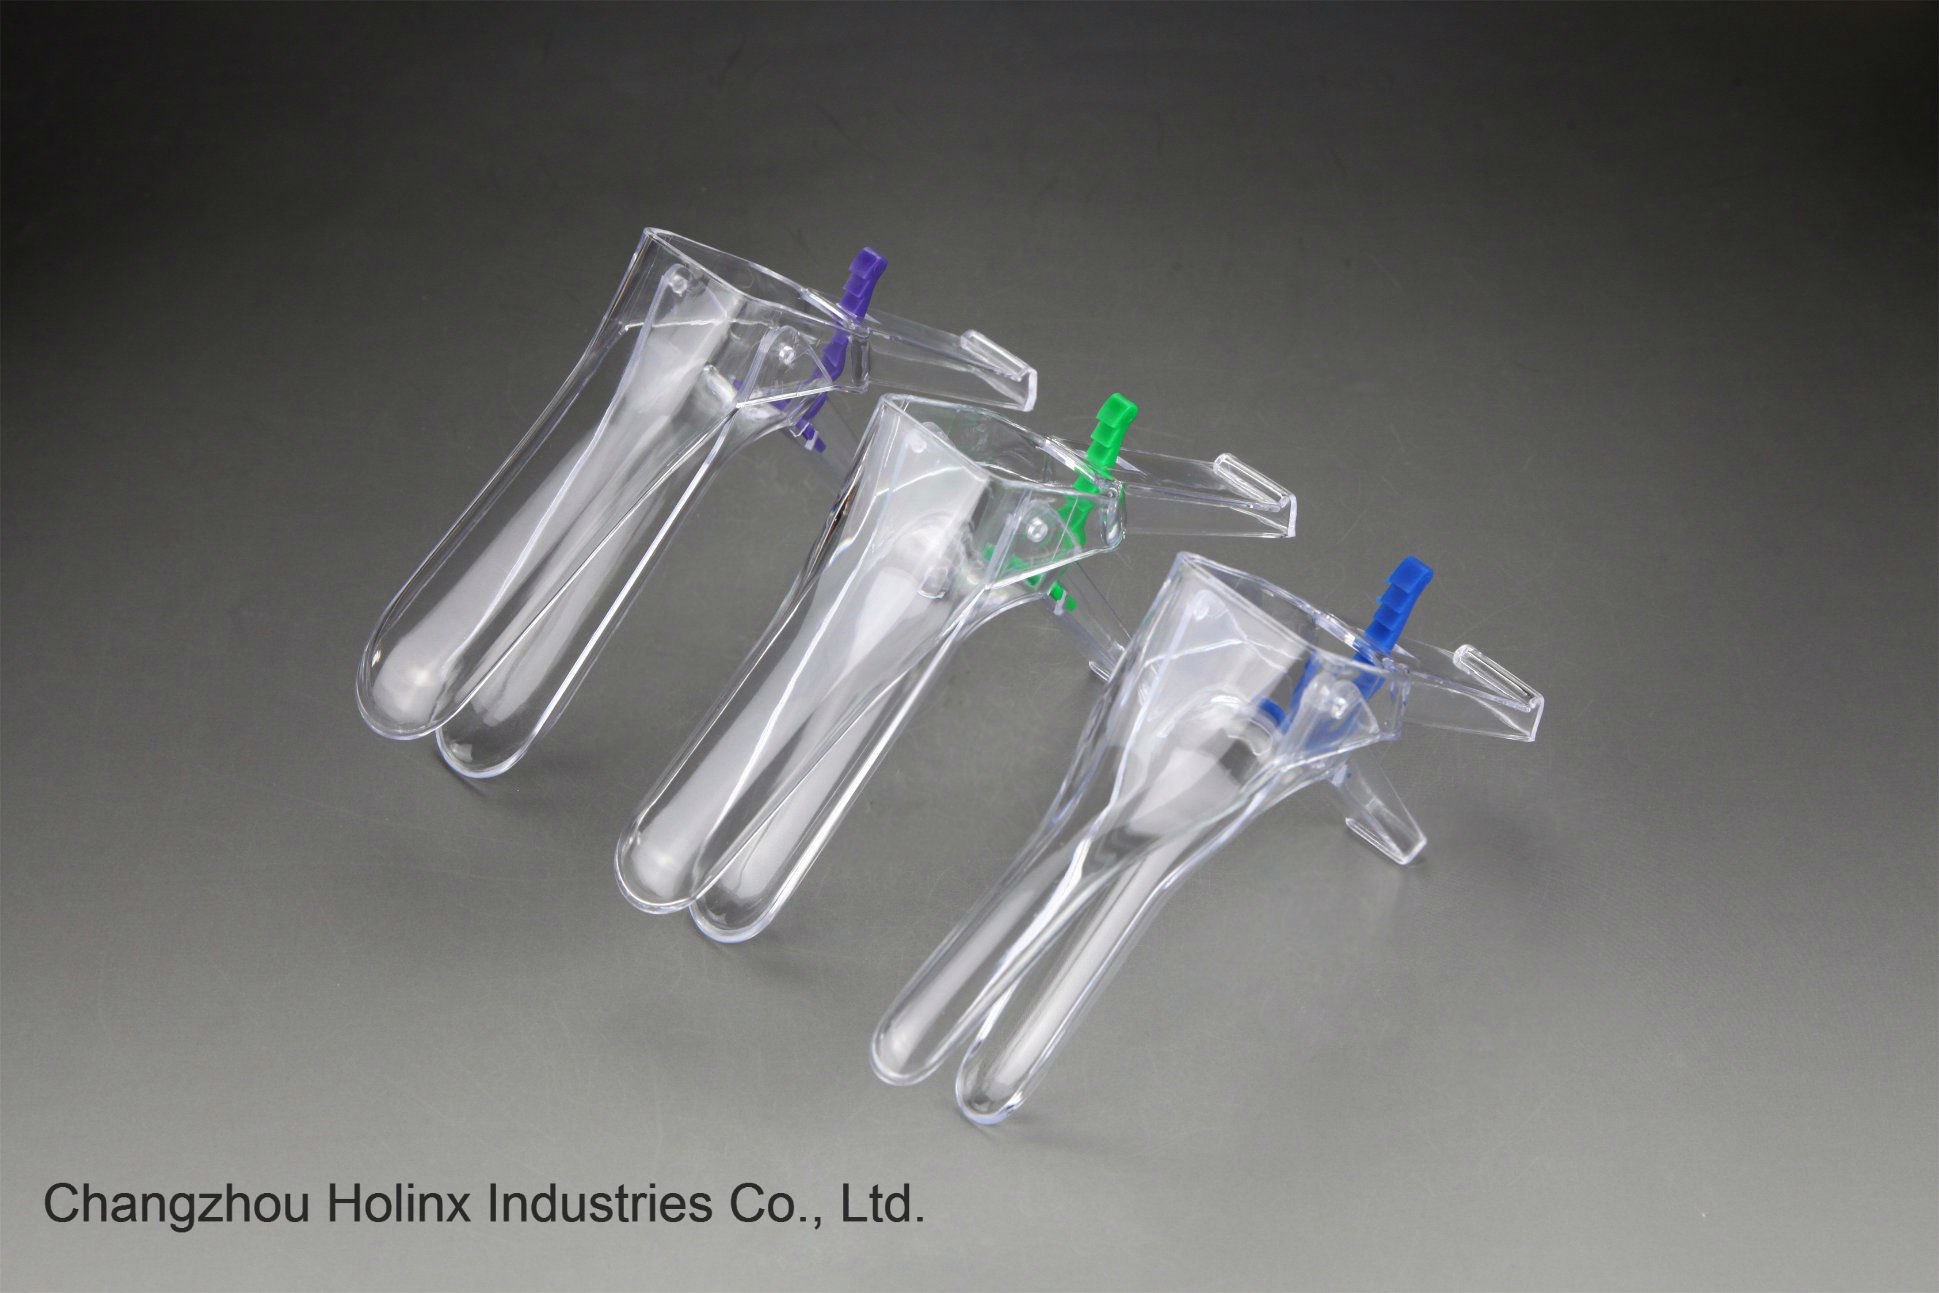 Plastic Sterile Gynecological Vaginal Dilators